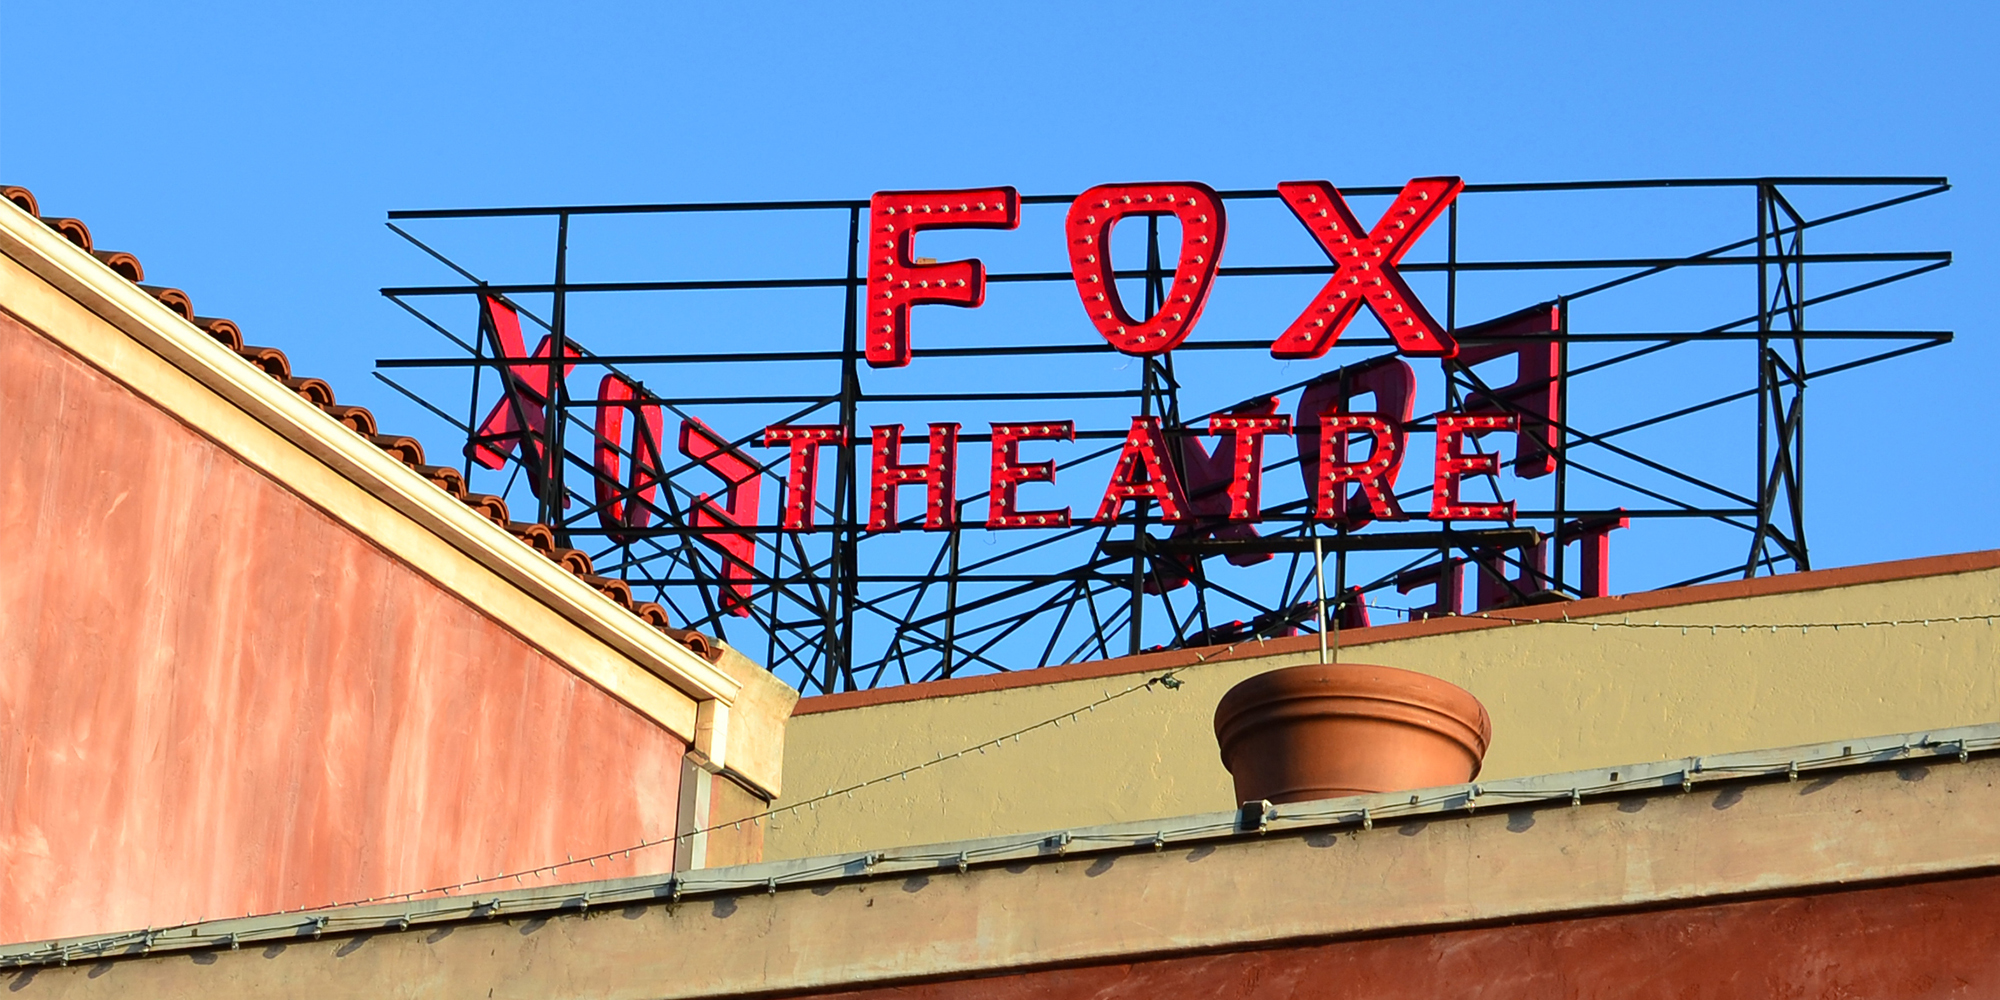 The theater's sign has been repainted and re-installed. Photographed on May 4, 2015.